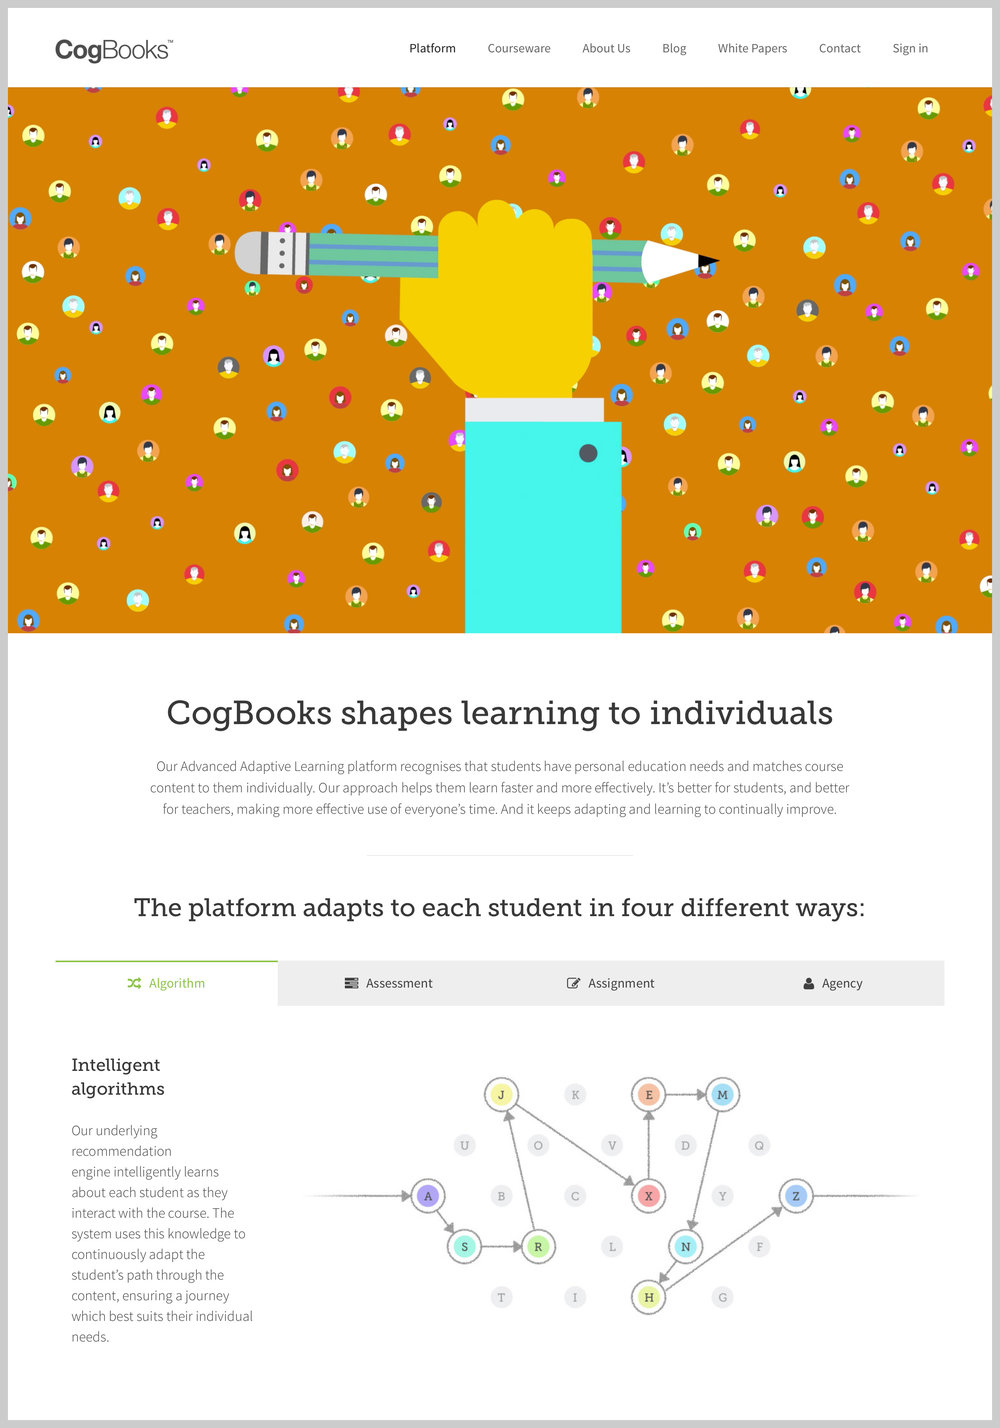 CogBooks-courseware-crop.jpg